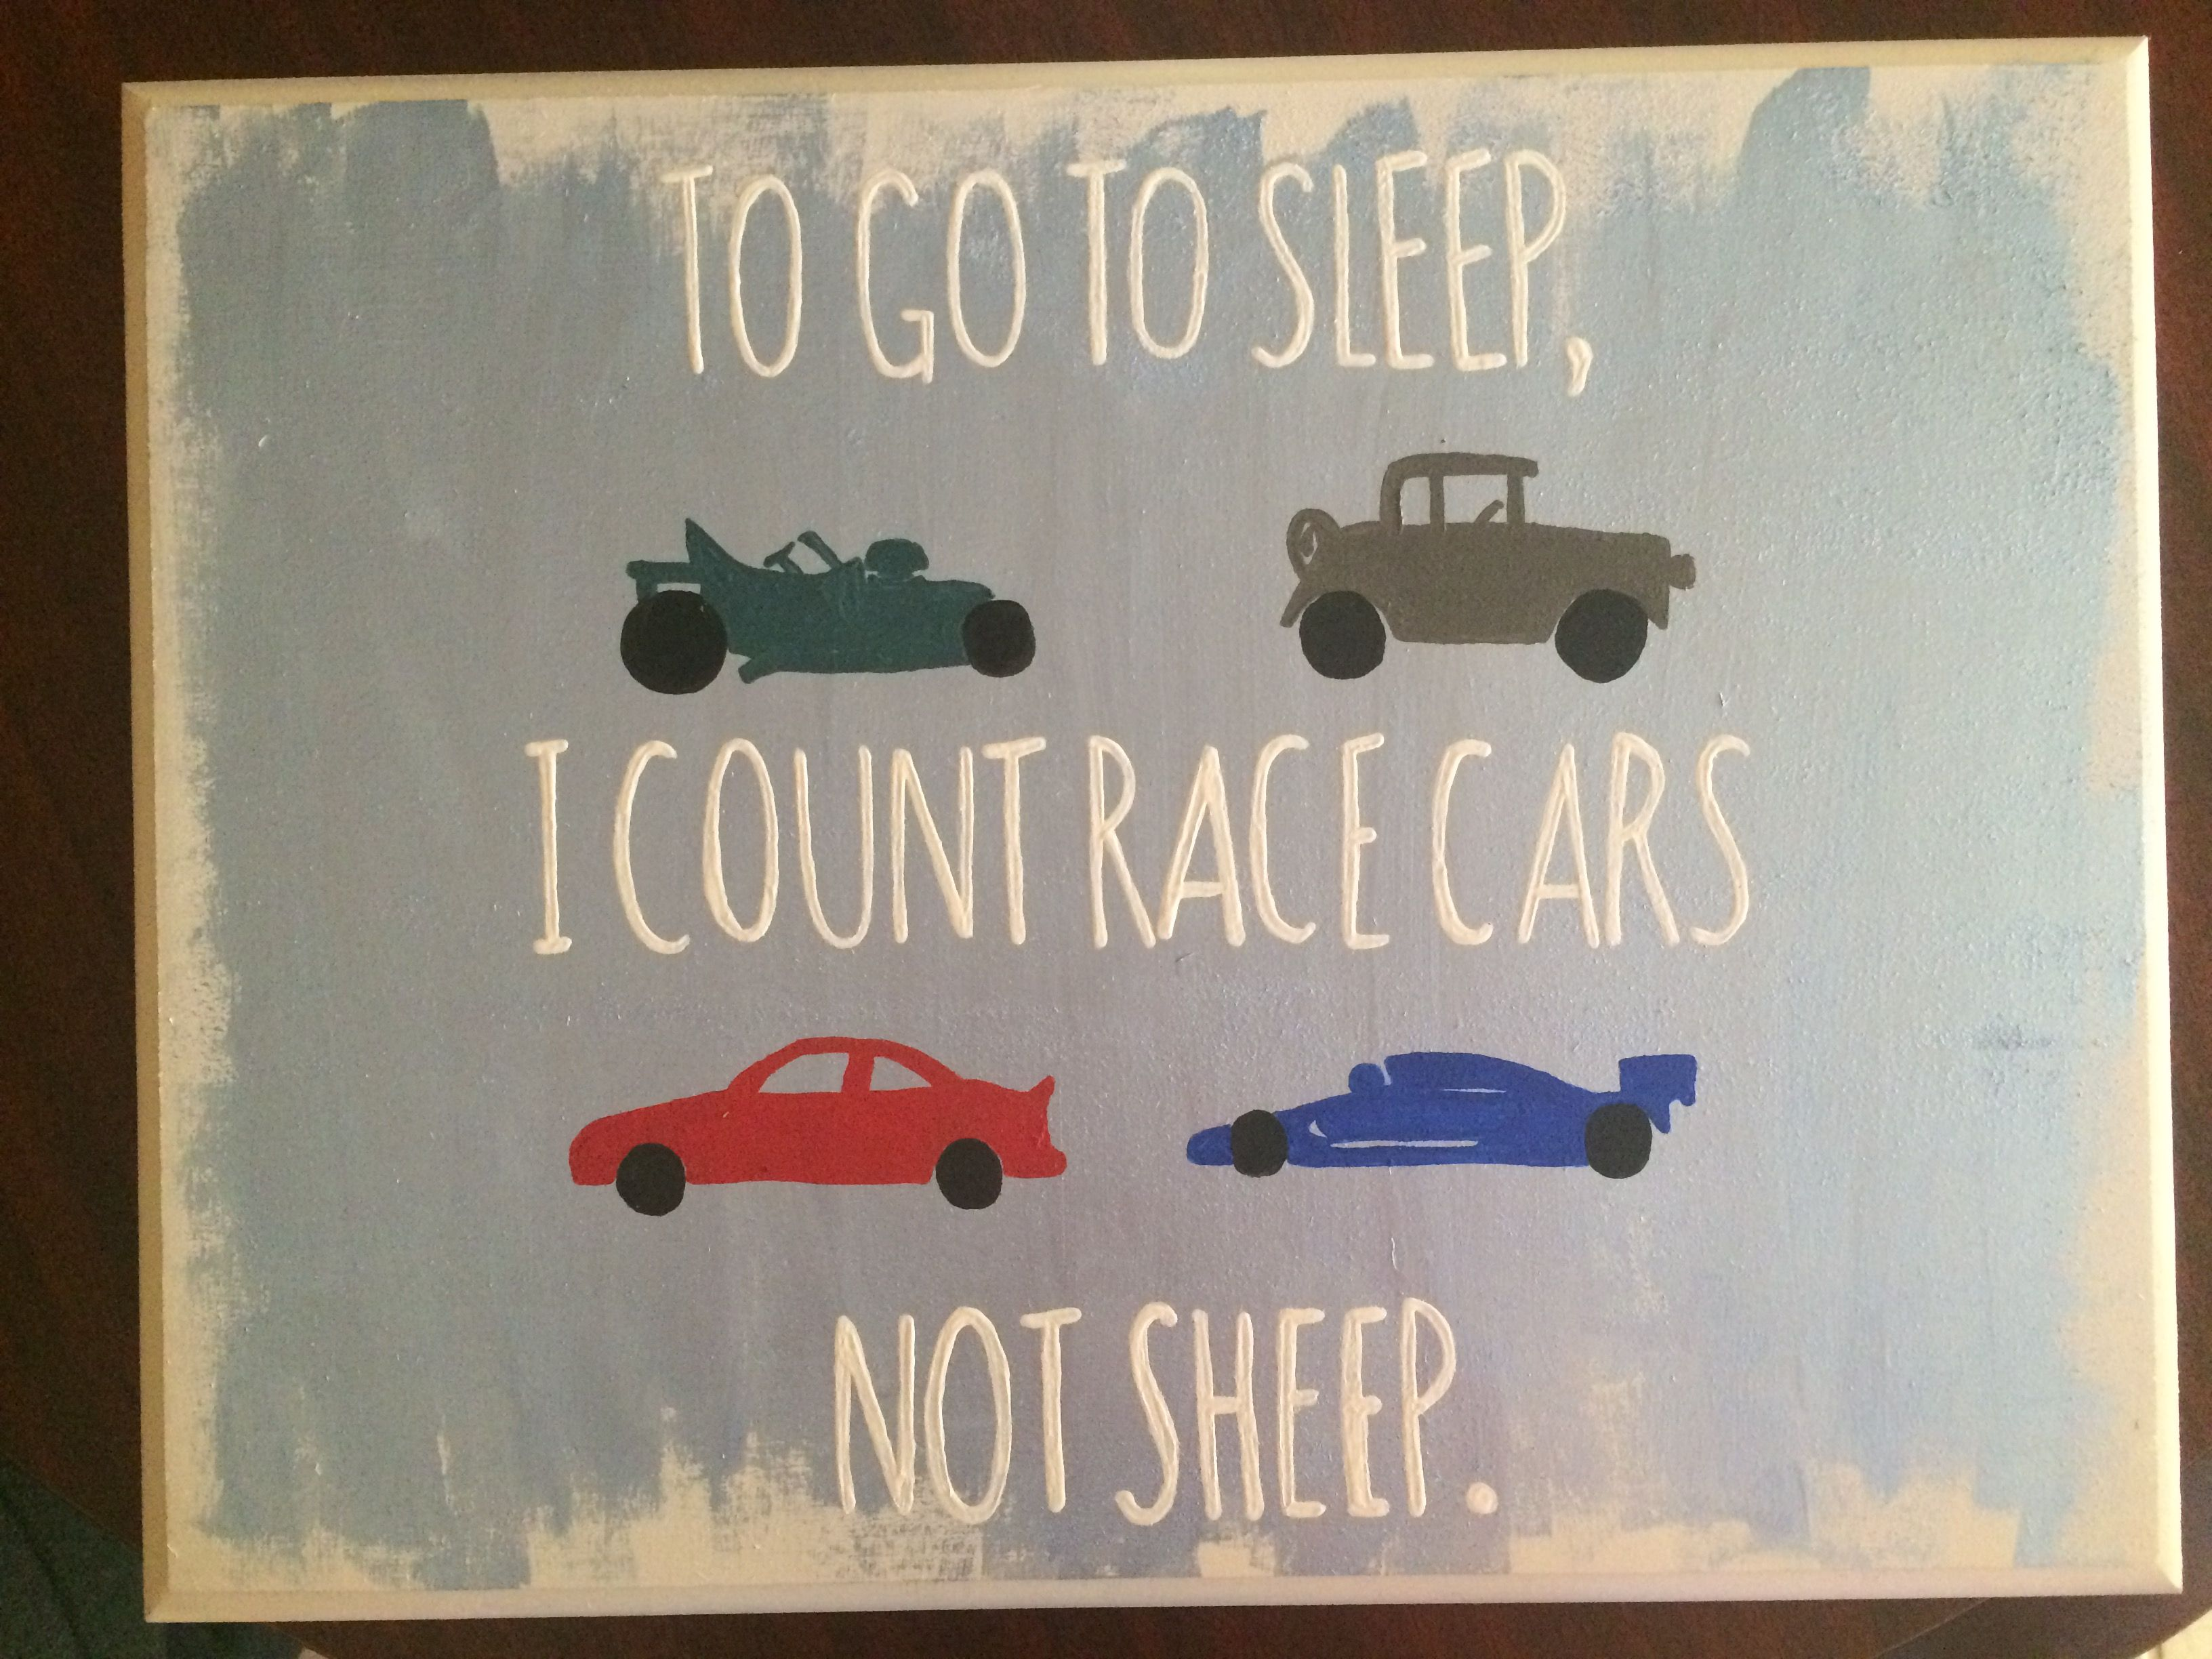 Boys car bedroom ideas - To Go To Sleep I Count Race Cars Not Sheep Baby Boy Car Lover Room